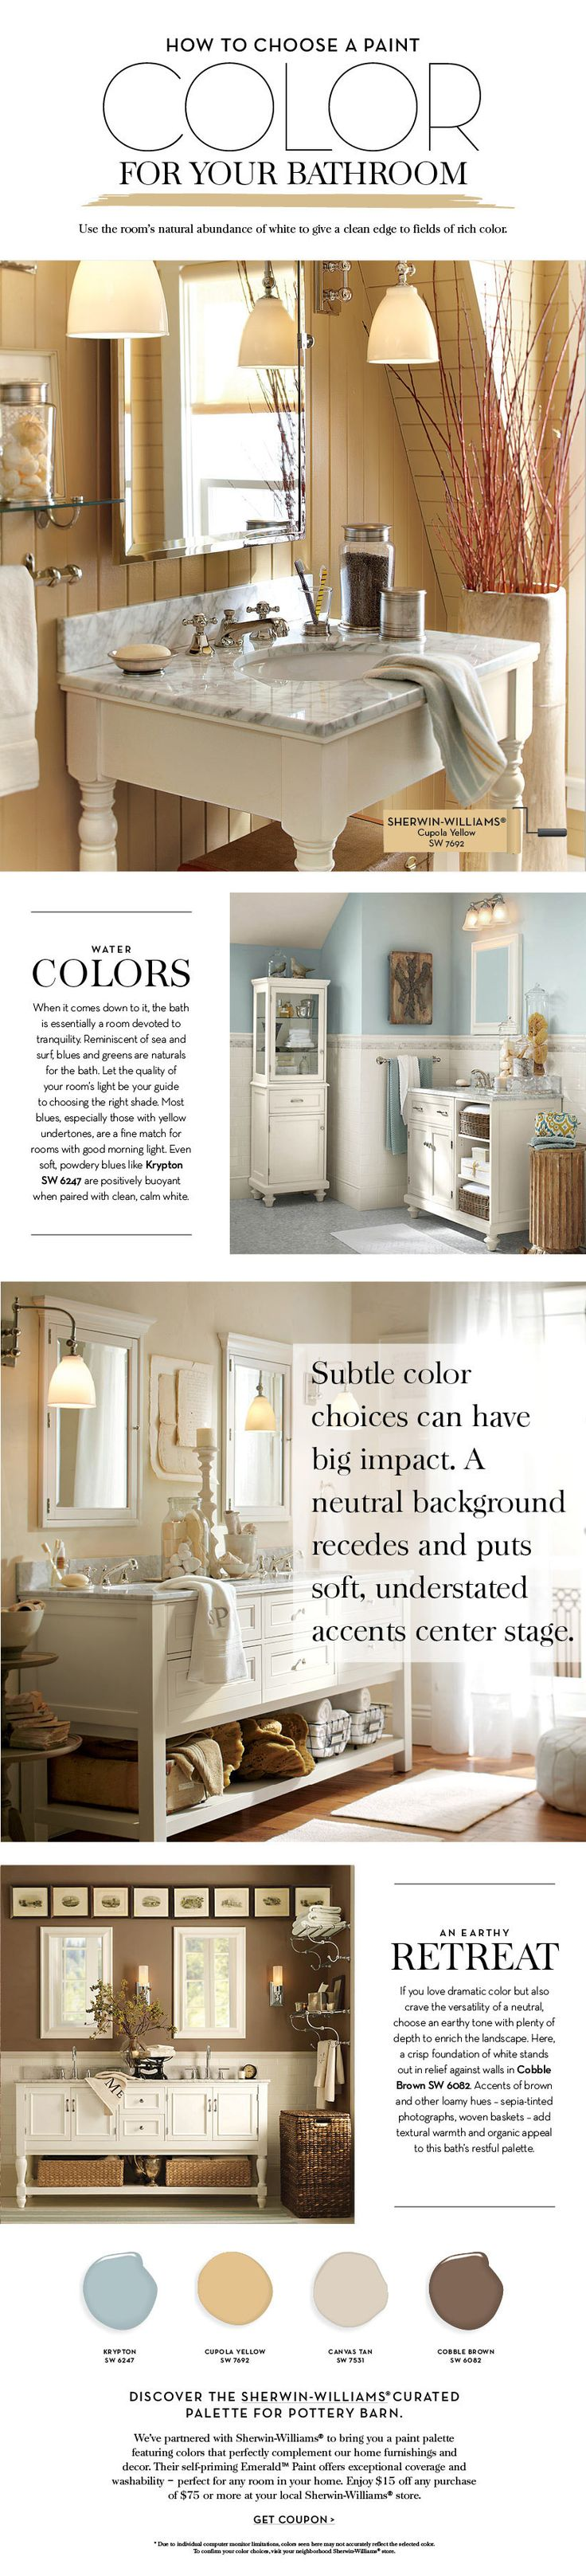 Paint colors for in bedroom traditional with exposed beams butter - Choose A Paint Color For Your Bathroom Pottery Barn